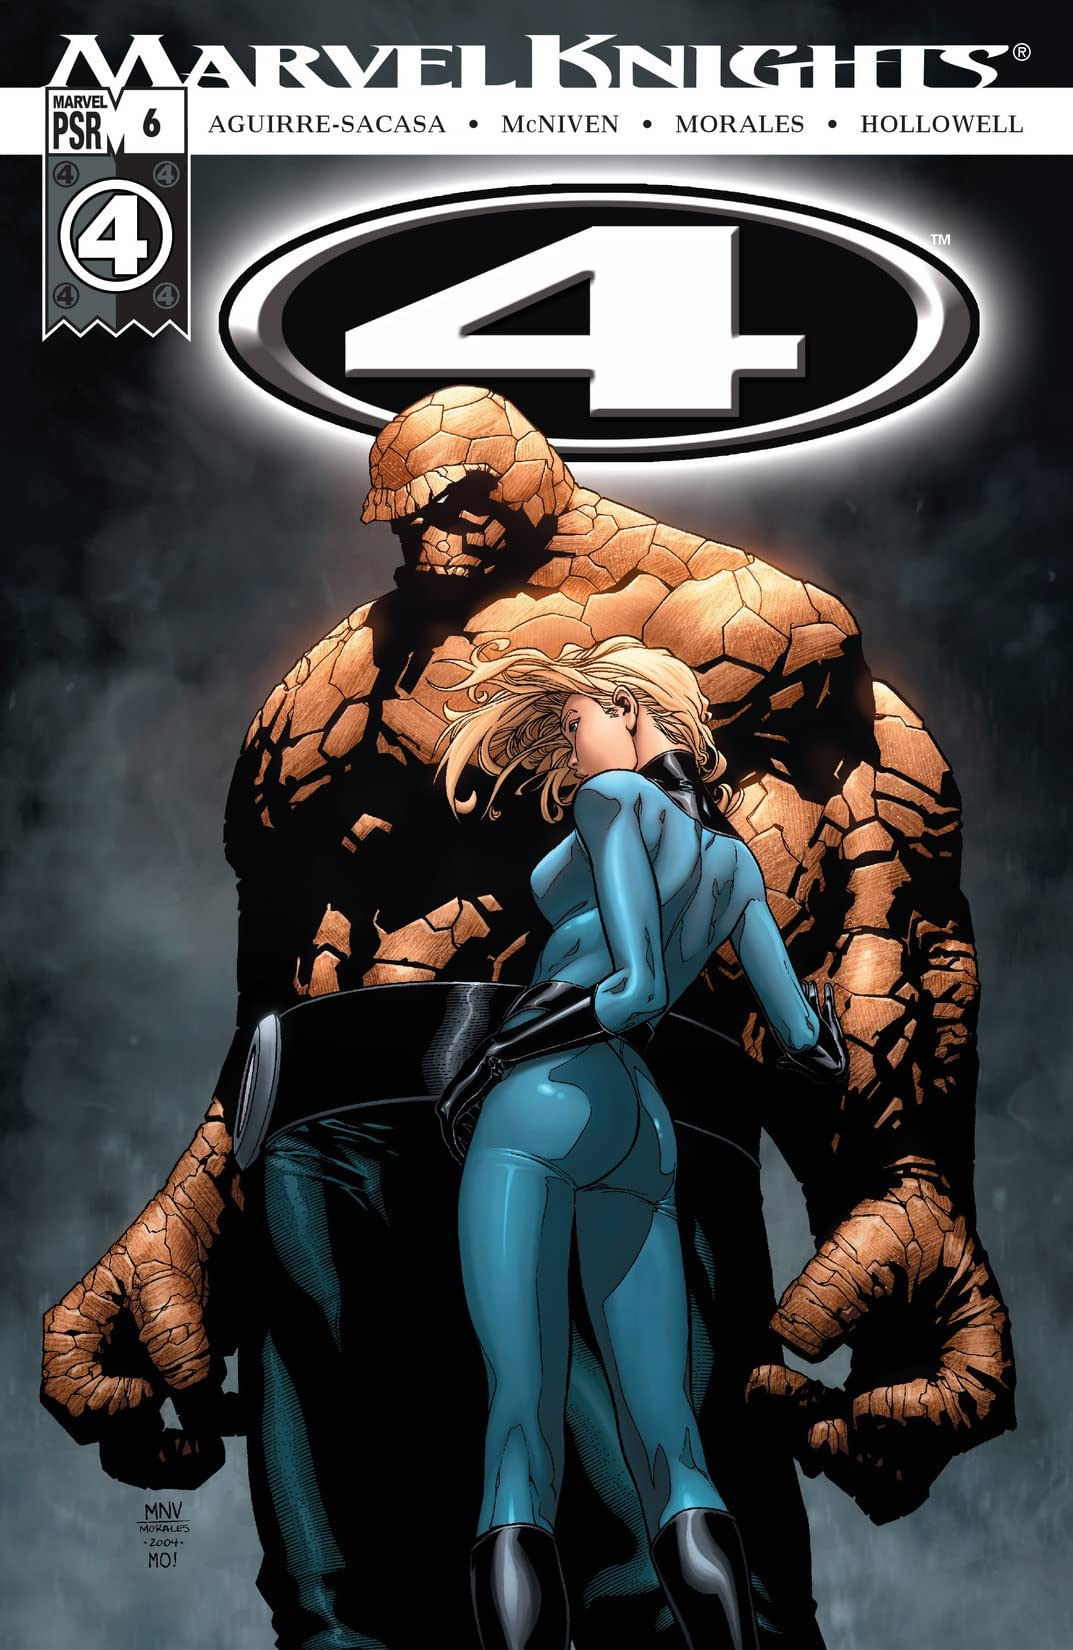 Marvel Knights: 4 (2004-2006) #6